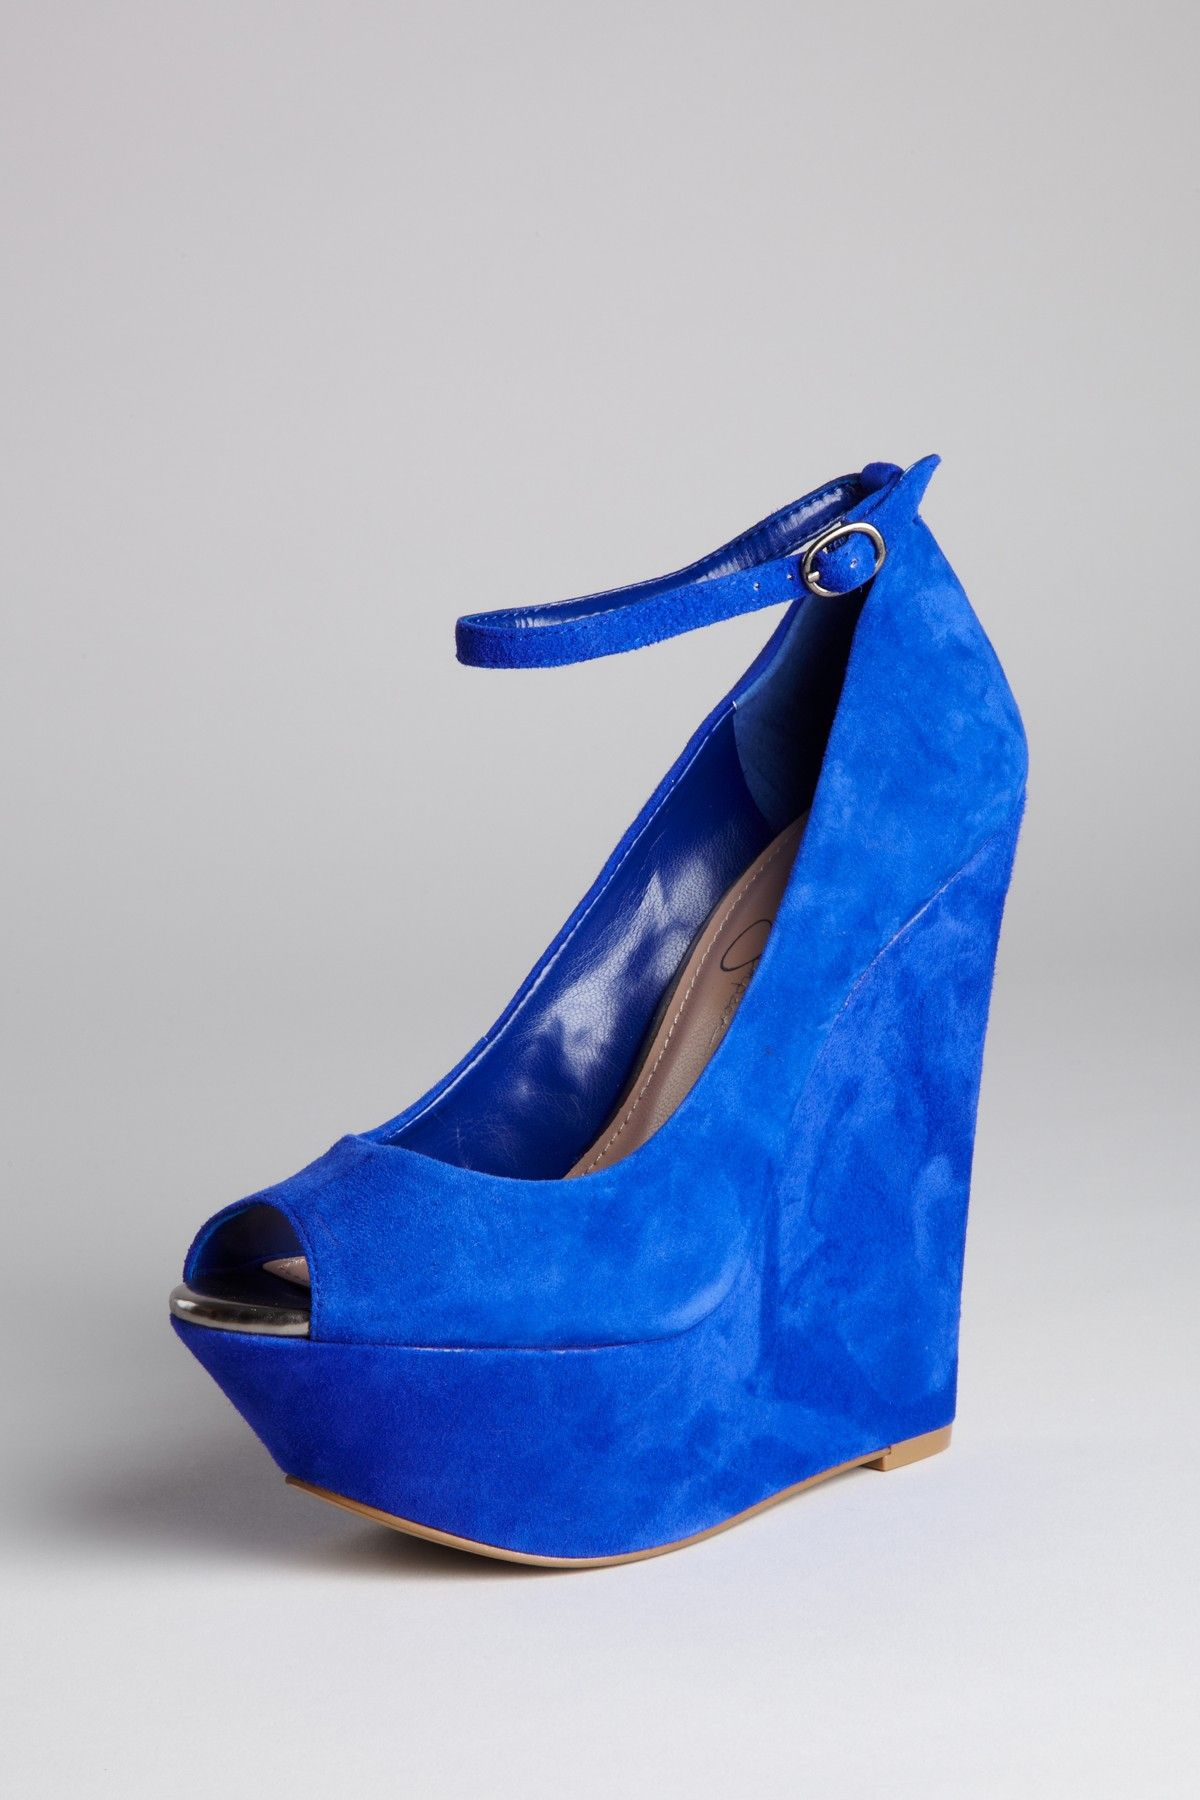 Cobalt every where!! Love the strap around the ankle!!